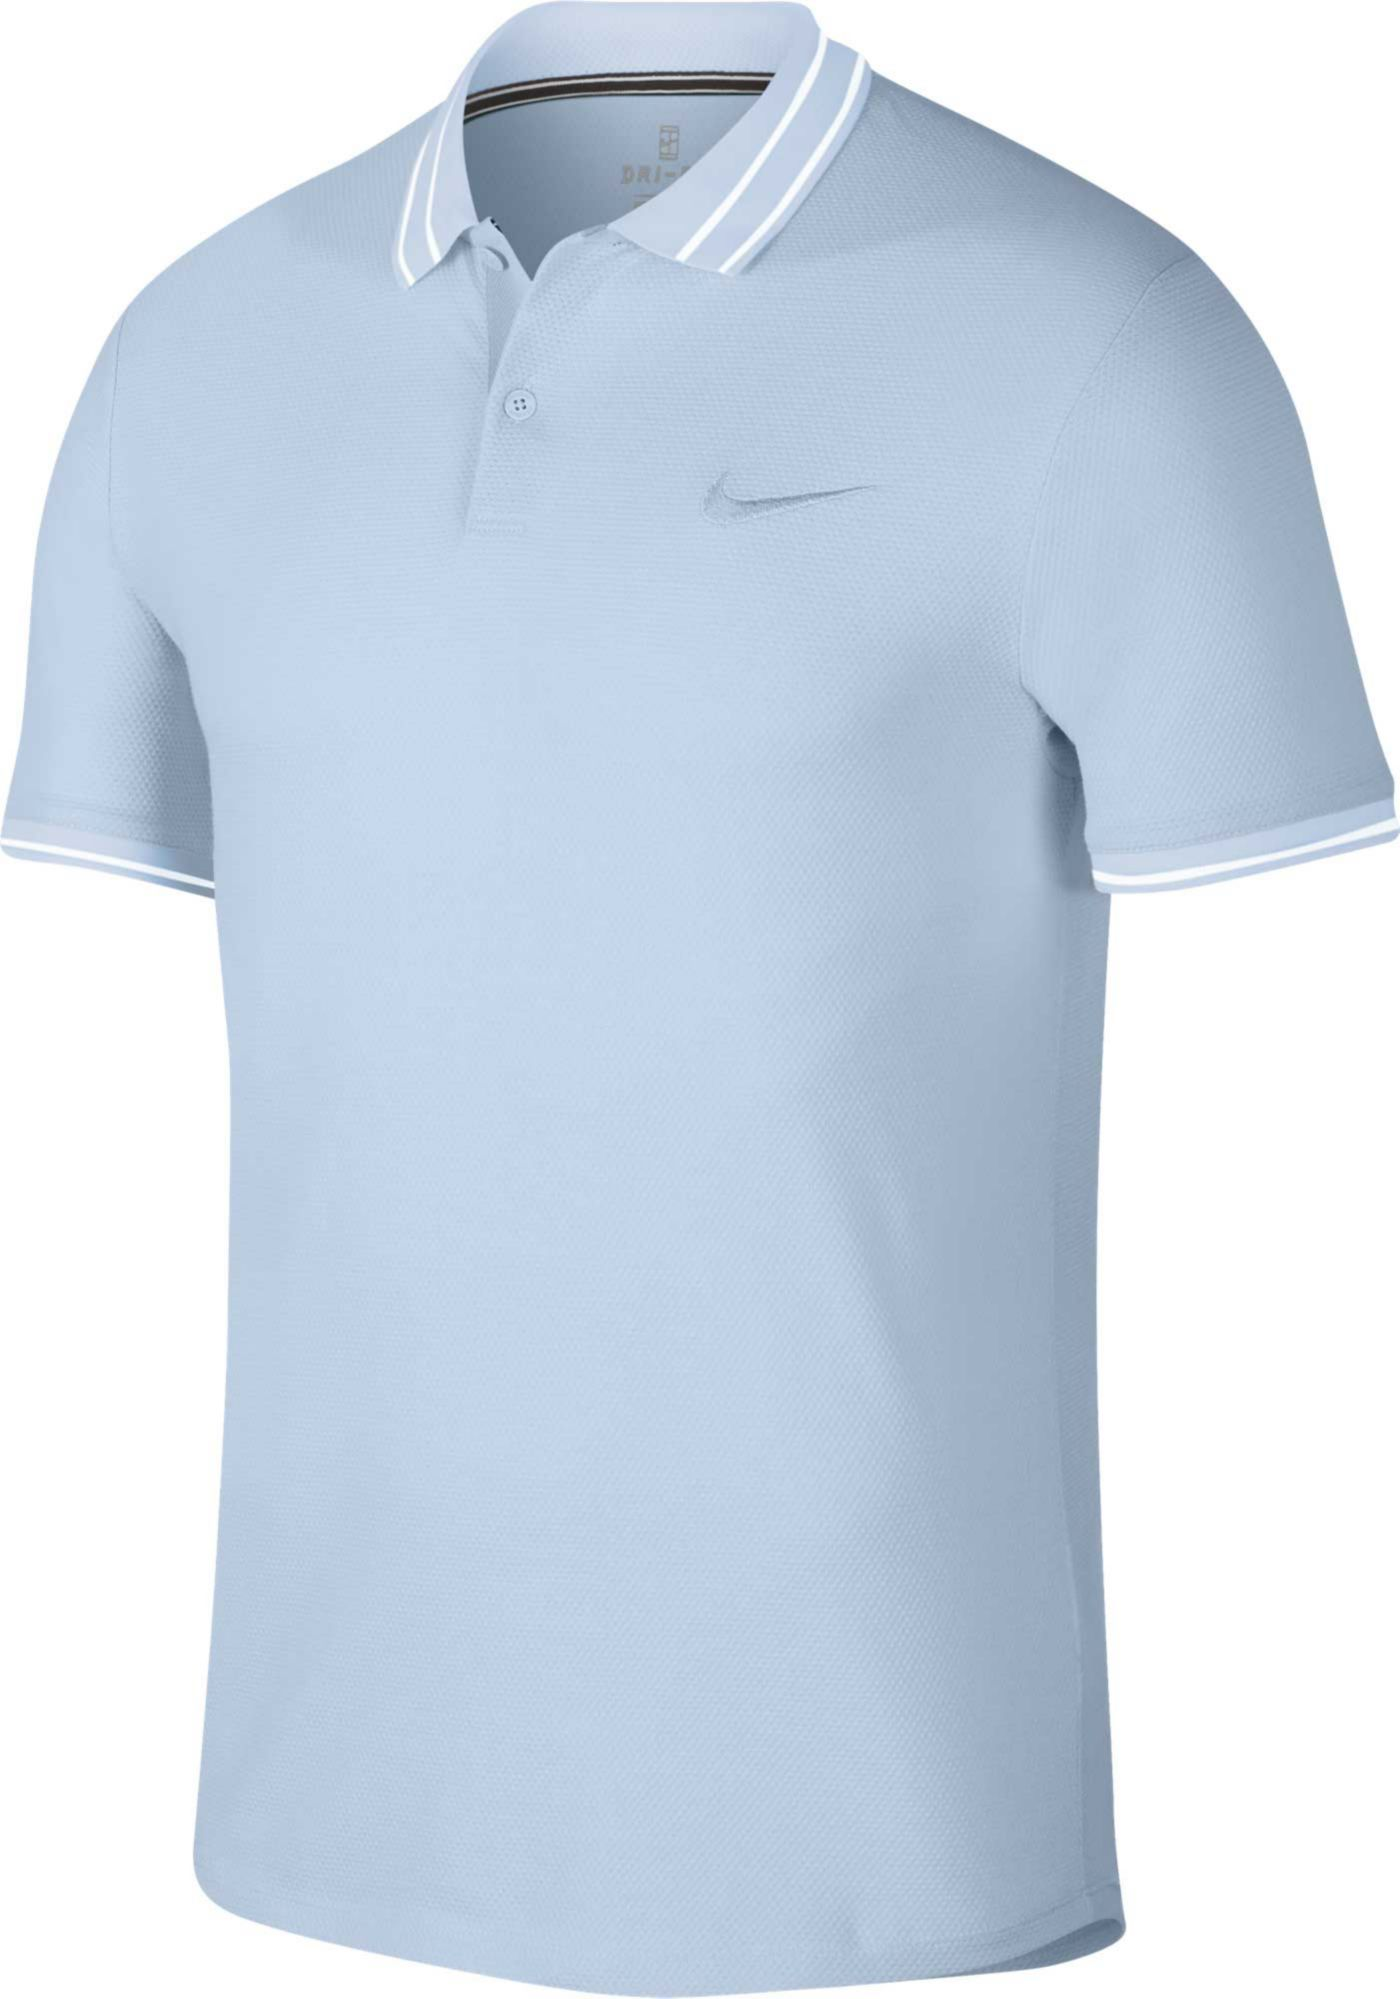 Nike Men's NikeCourt Advantage Dri-FIT Tennis Polo